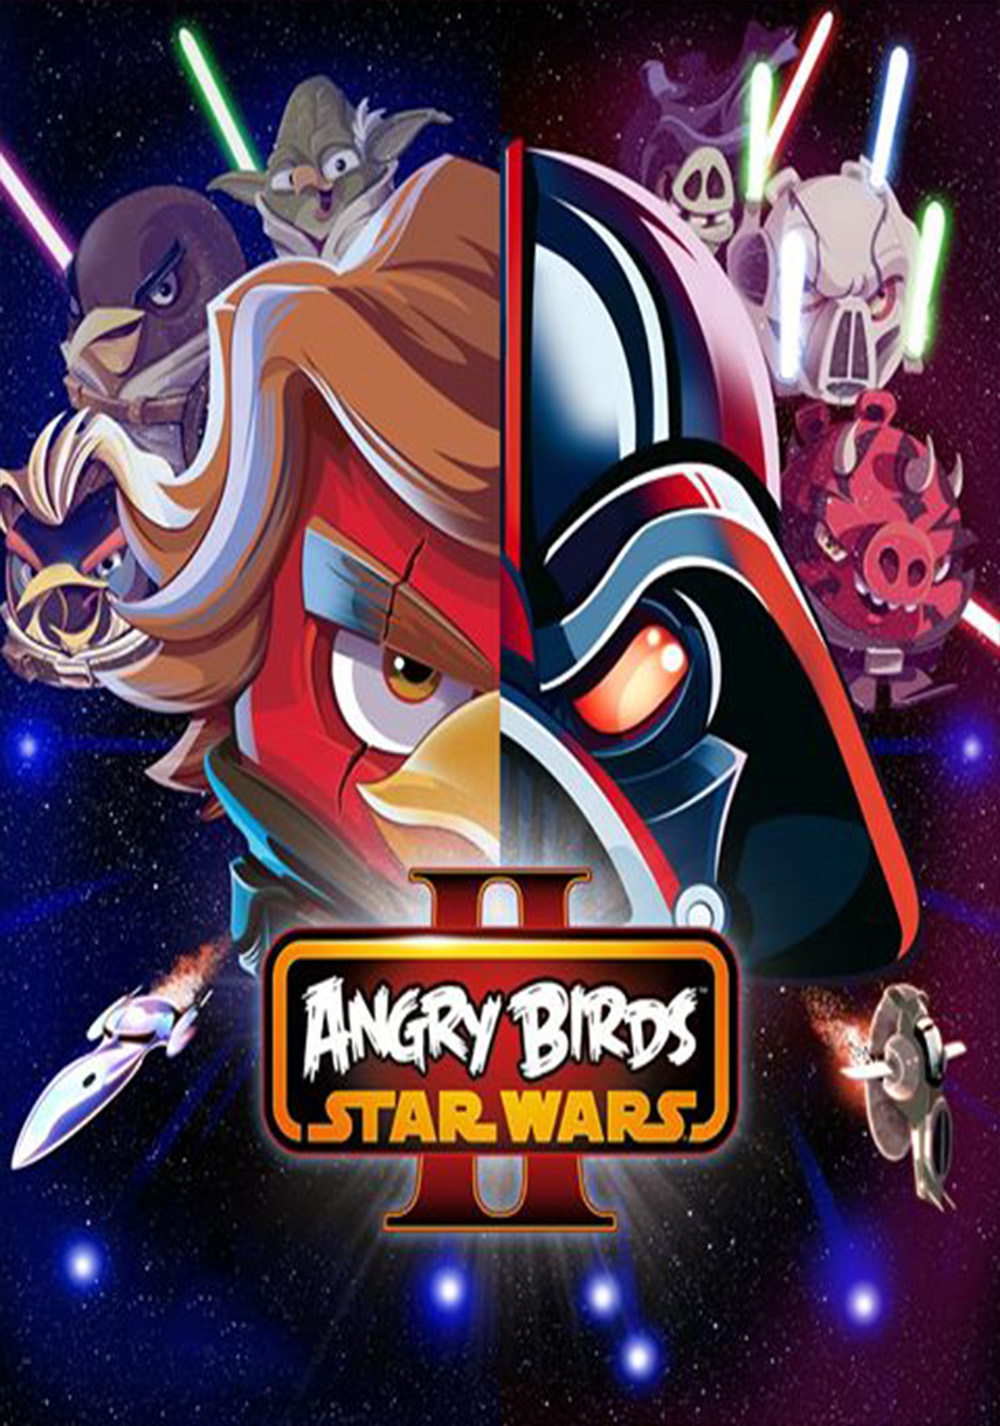 Tgdb Browse Game Angry Birds Star Wars Ii